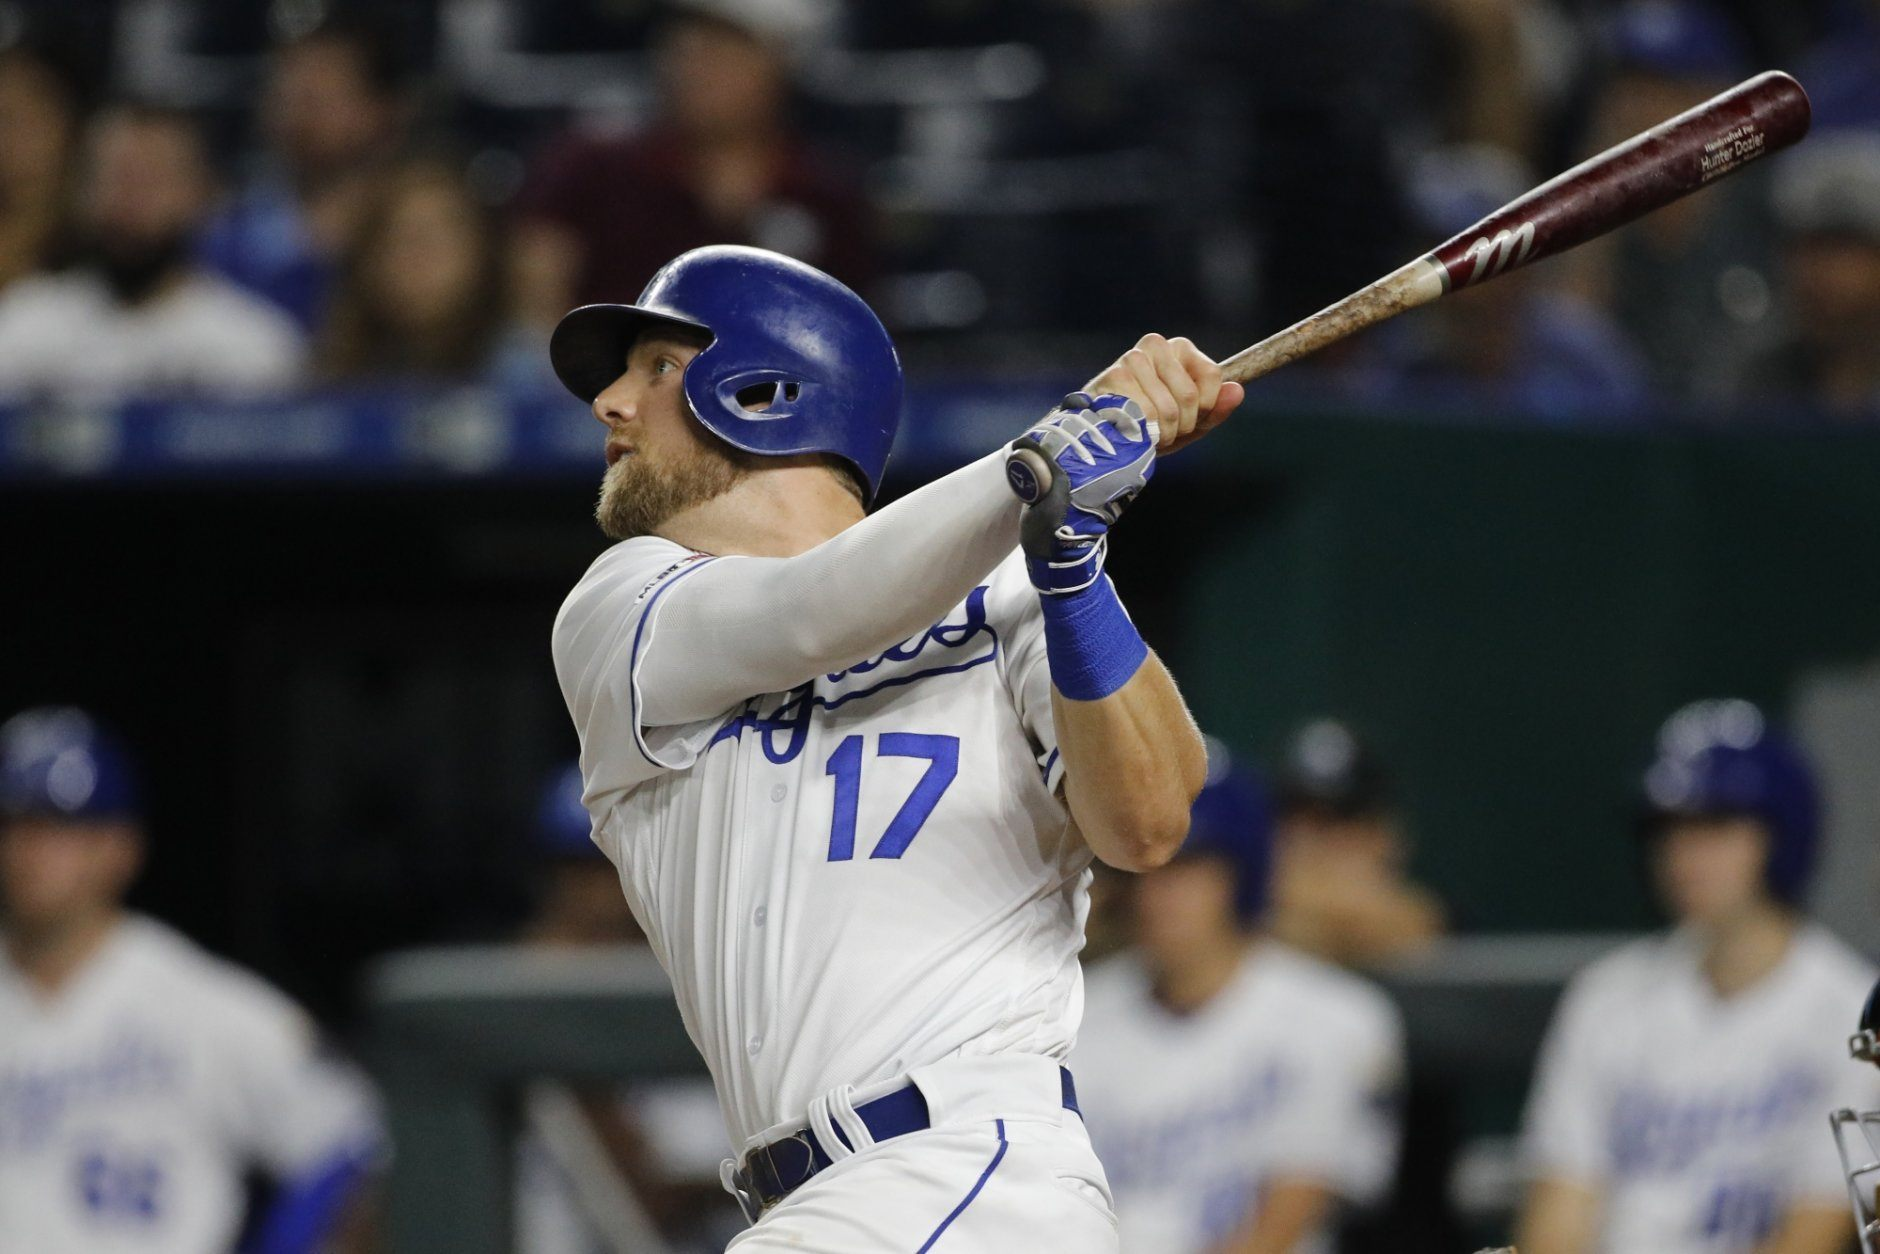 Kansas City Royals' Hunter Dozier hits a solo home run to tie the game in the seventh inning of a baseball game against the Baltimore Orioles at Kauffman Stadium in Kansas City, Mo., Saturday, Aug. 31, 2019. (AP Photo/Colin E. Braley)